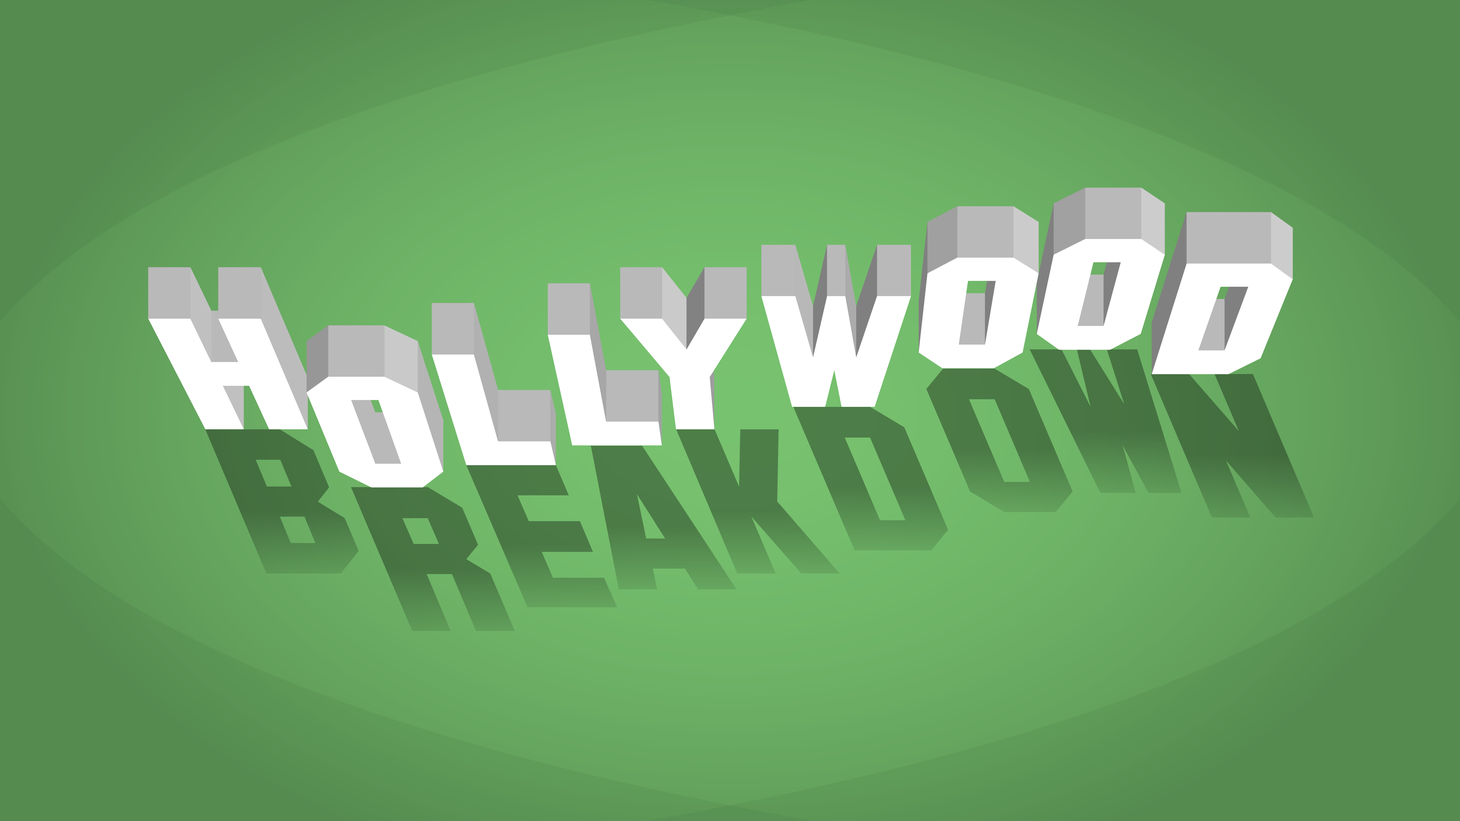 The accusations involve not just Hollywood, but fashion and media as well.